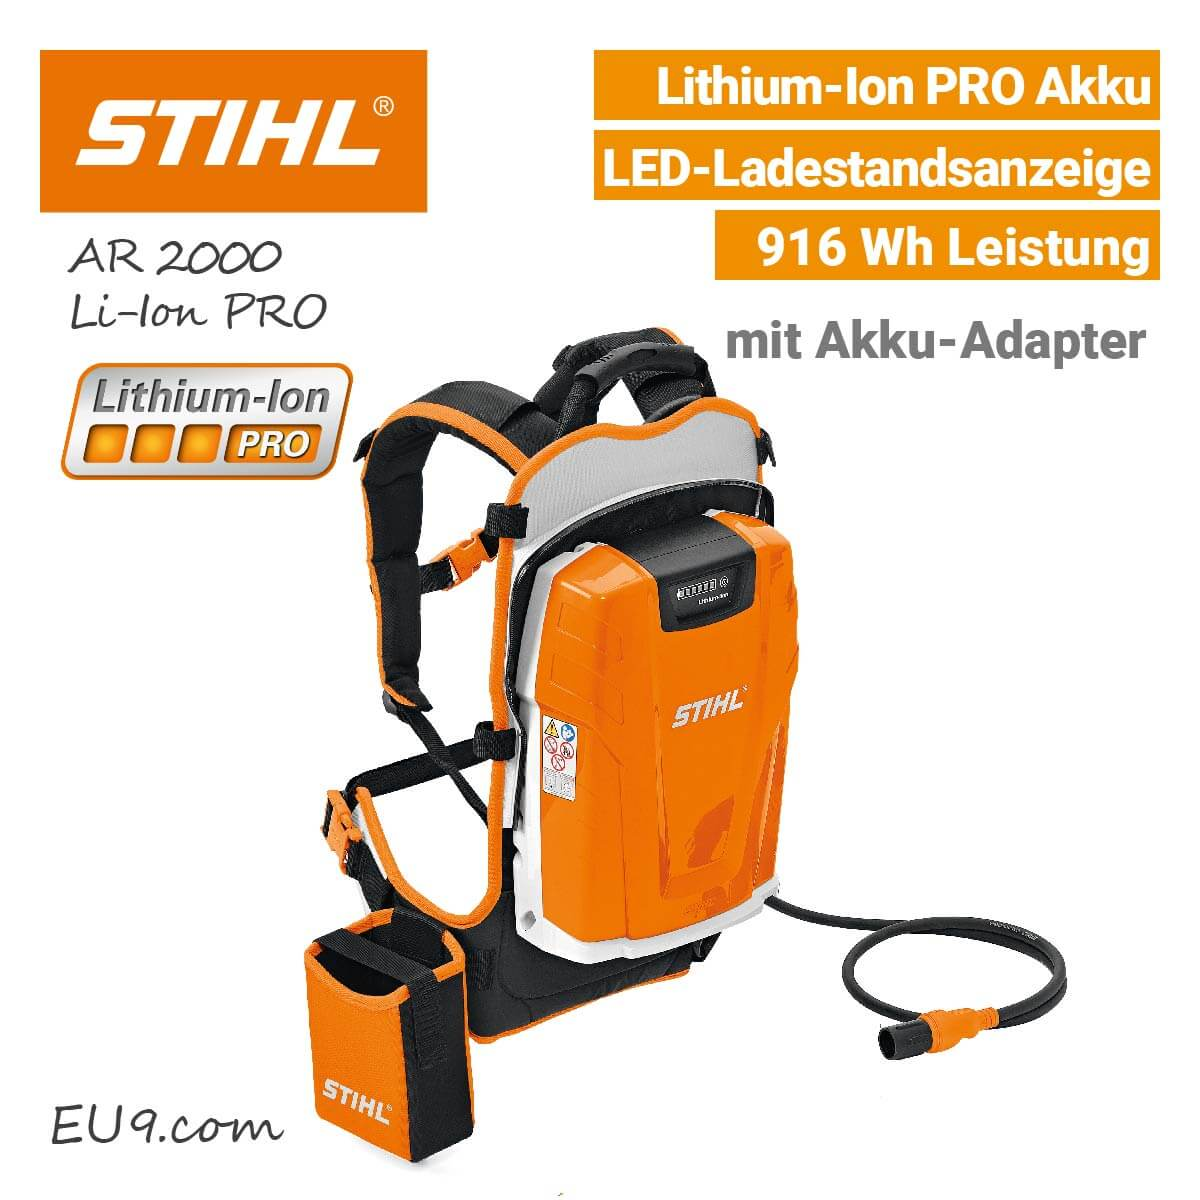 stihl ar 2000 lithium ion pro akku r ckengetragen bei eu9 kaufen. Black Bedroom Furniture Sets. Home Design Ideas